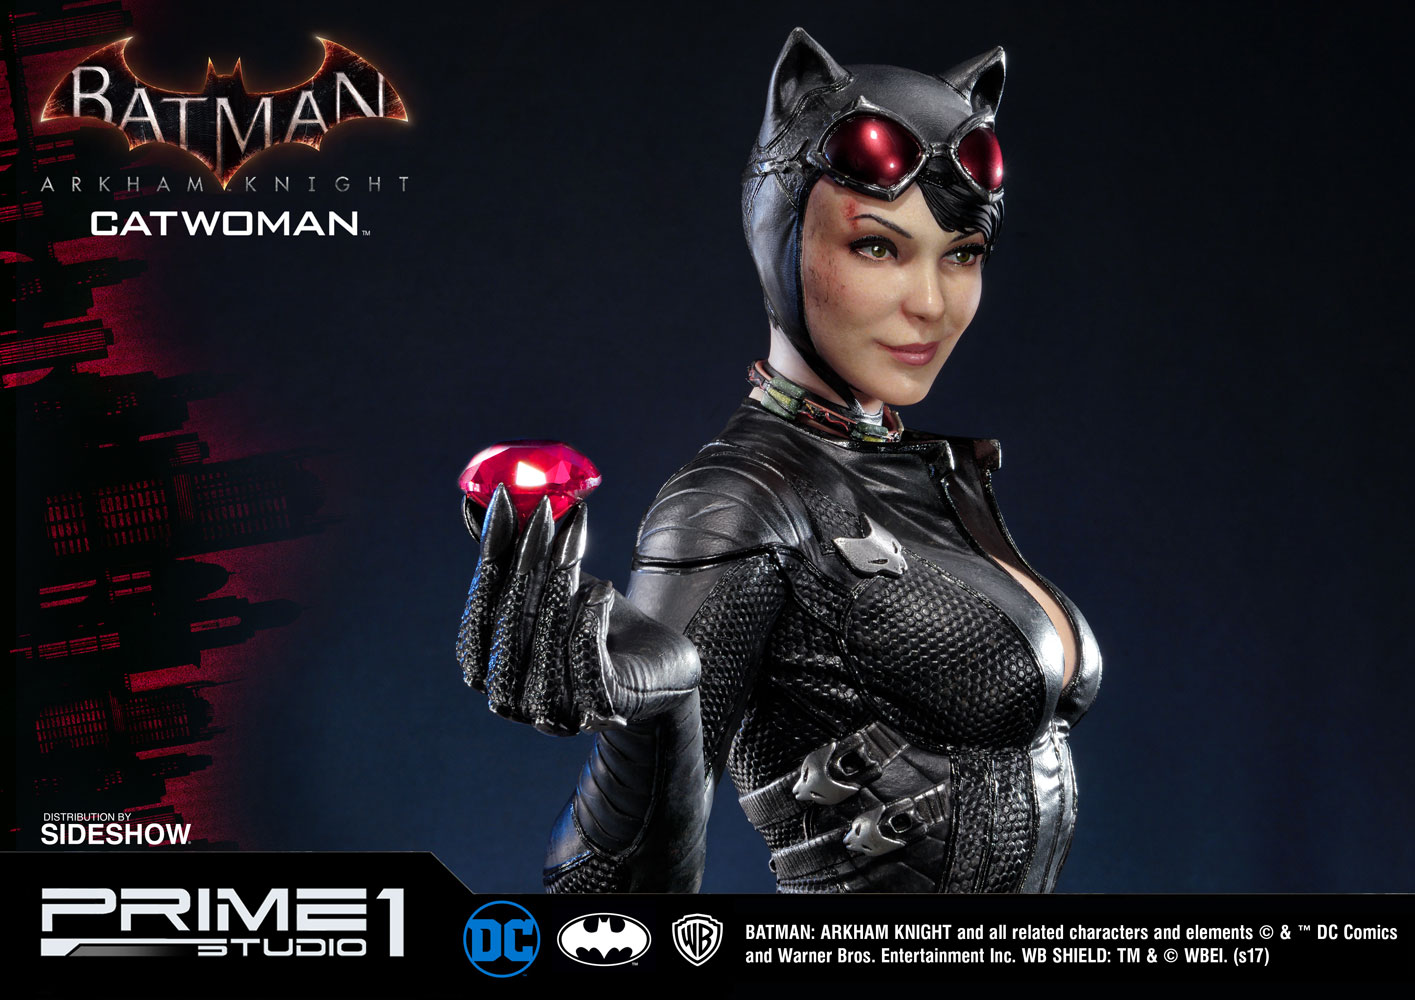 Catwoman Statue - Prototype Shown Catwoman Statue  sc 1 st  Sideshow Collectibles & DC Comics Catwoman Statue by Prime 1 Studio   Sideshow Collectibles